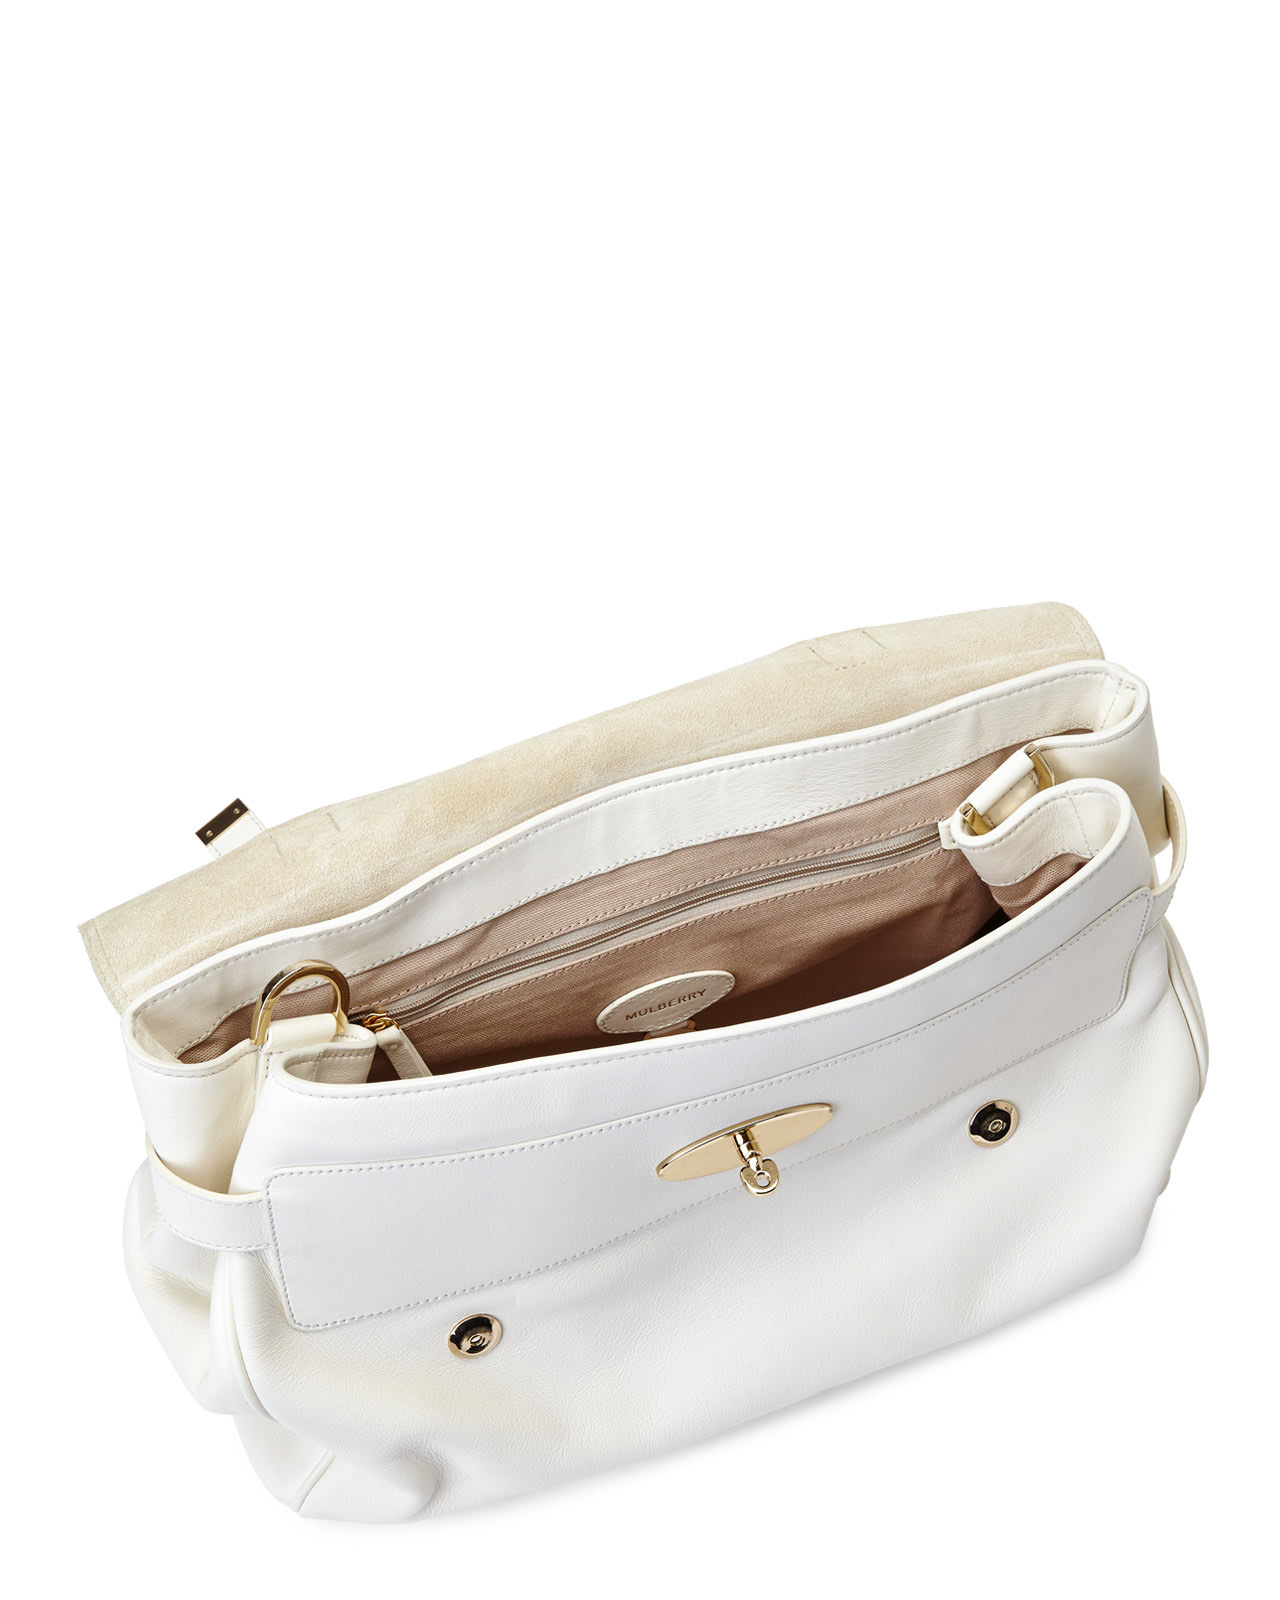 7fefb1ac8a6 ... cheapest lyst mulberry cream oversized alexa handbag in white a8566  a7f41 ...